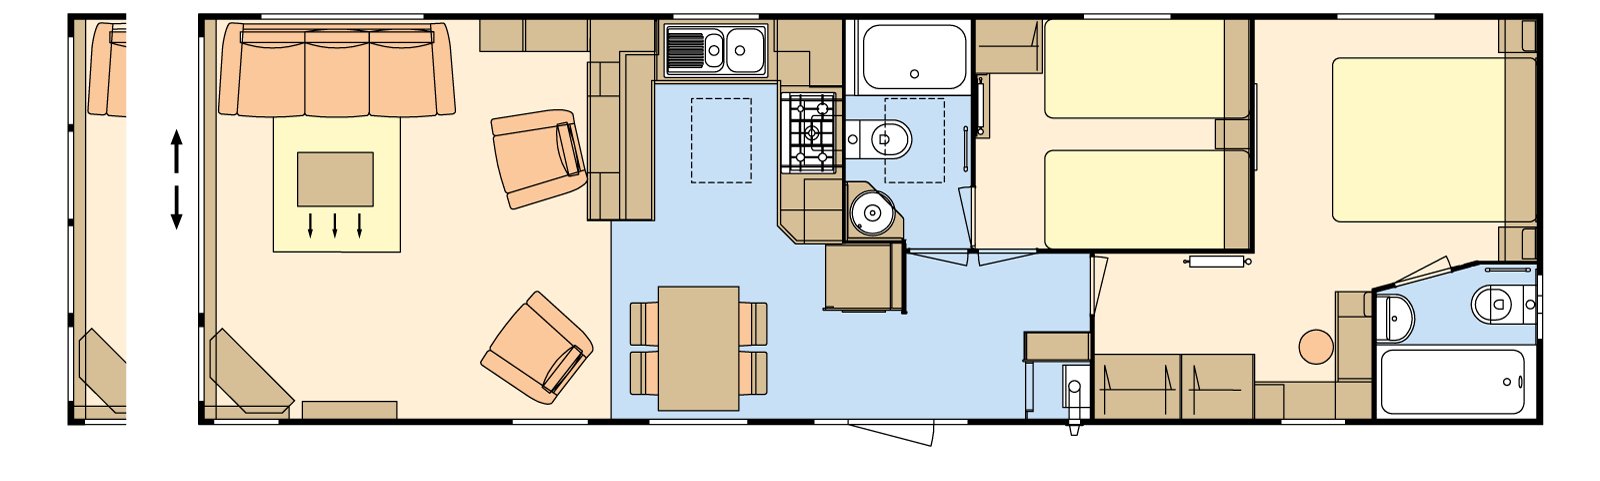 41 × 12-6 – 2 bedroom/6 berth